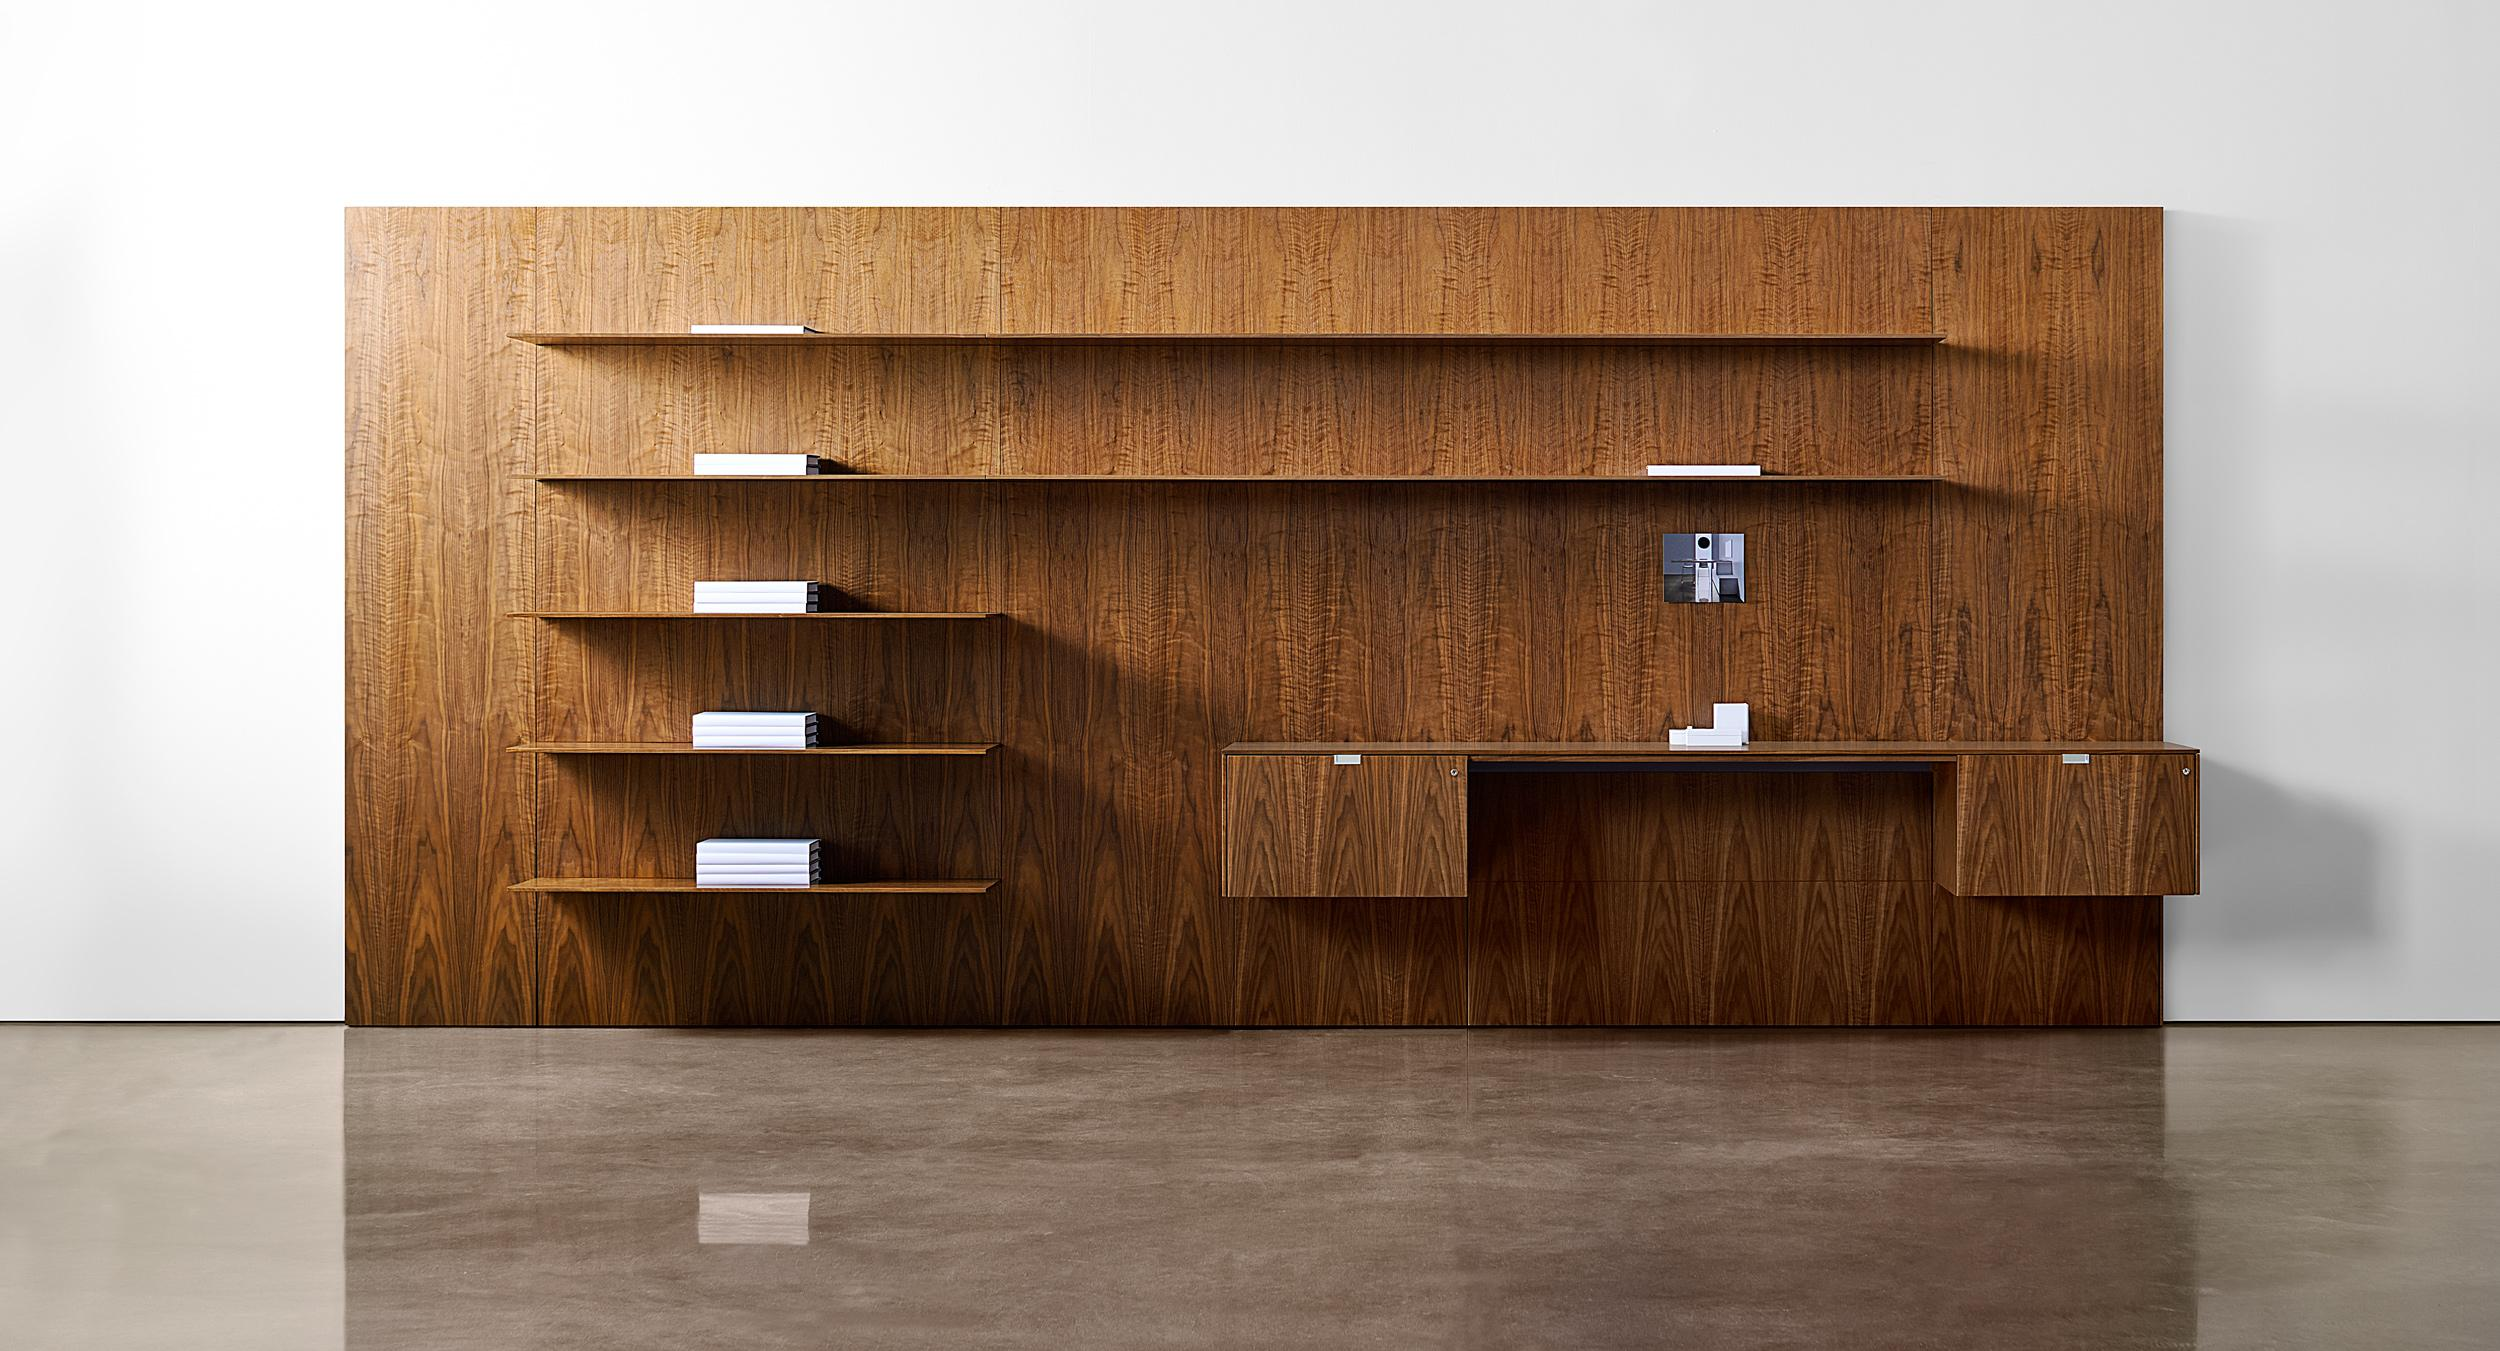 Patented thin wood shelves and elevated storage are amazingly robust and light in scale. Patent No. US9955787B2